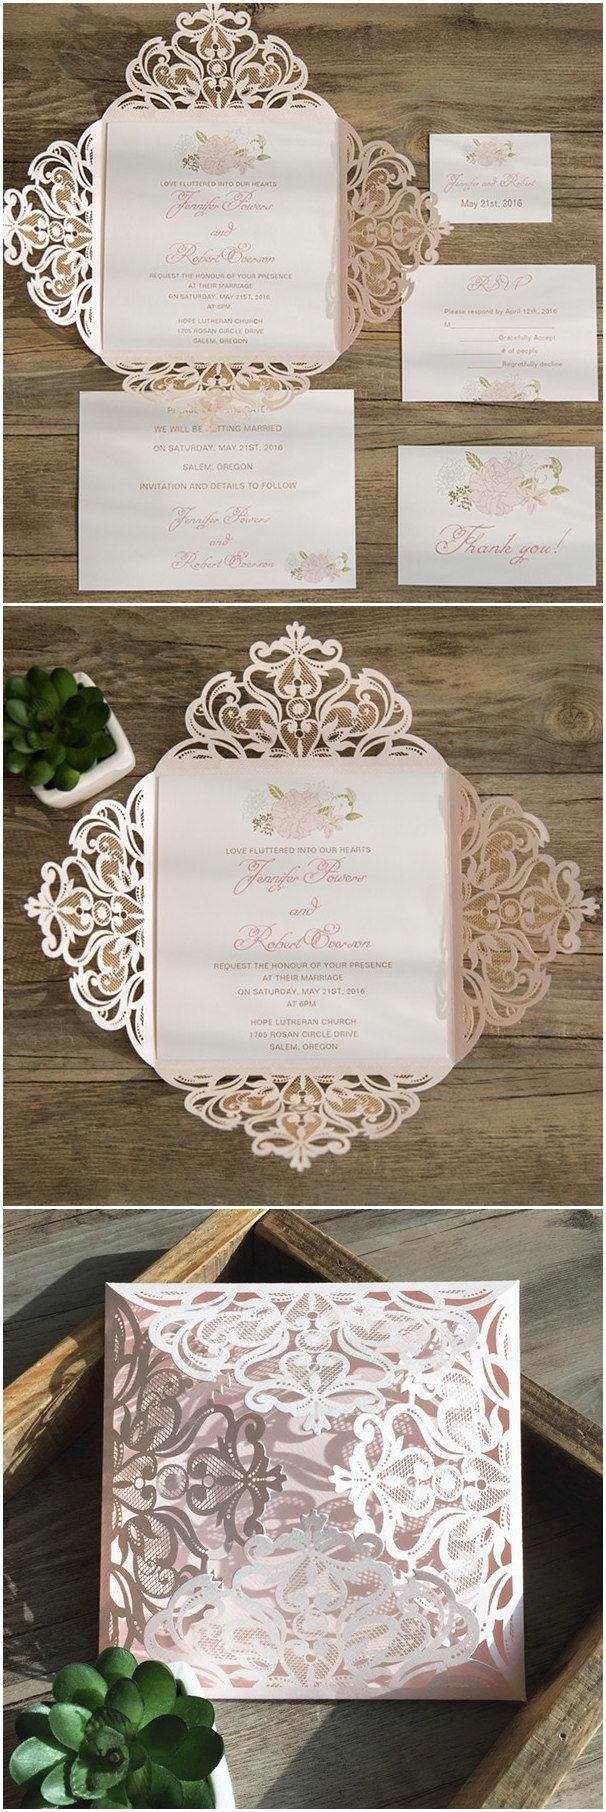 73 Best Laser Cut Wedding Invitations Images On Pinterest